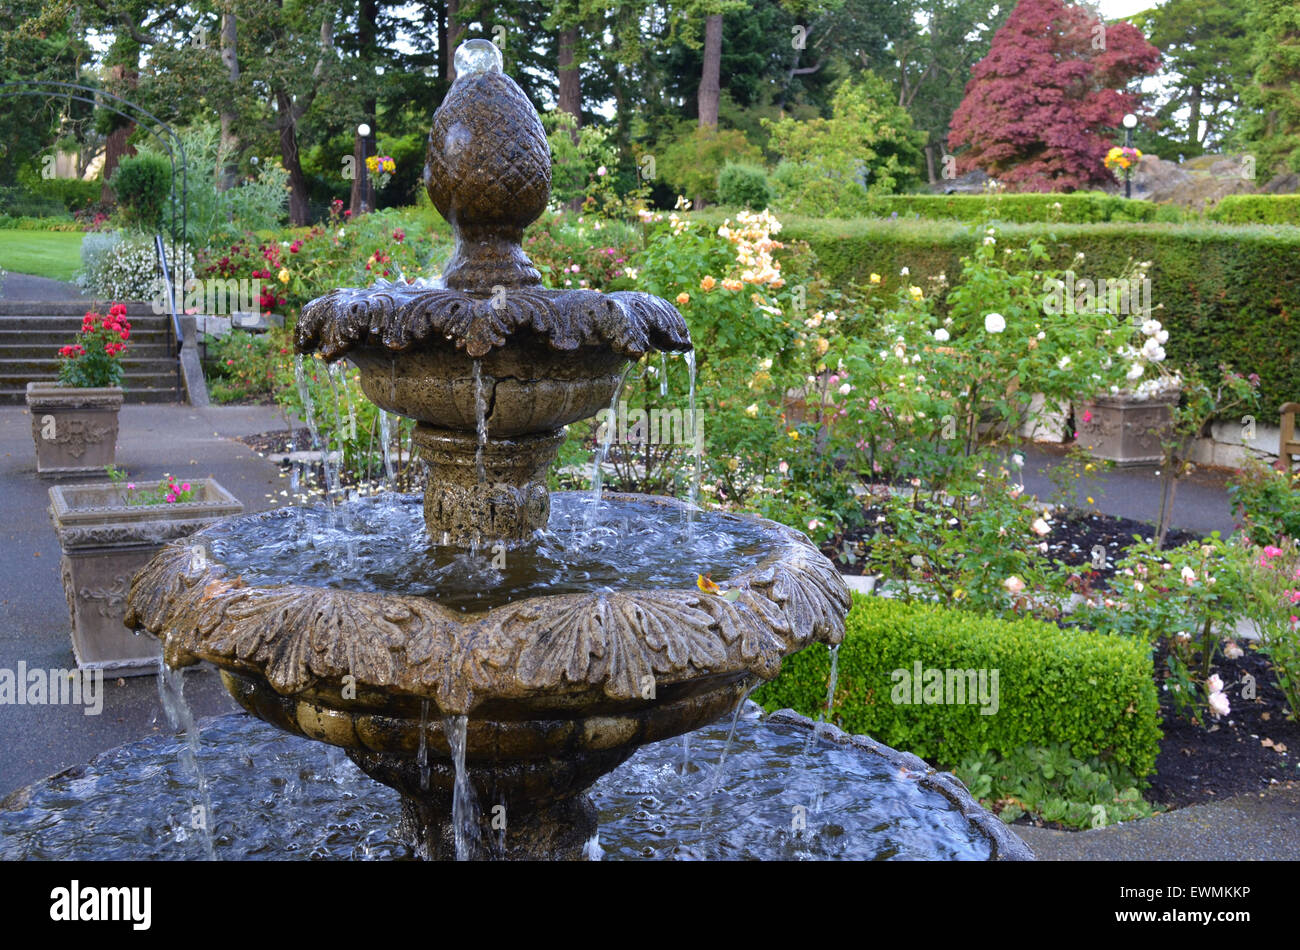 Stone Water Fountain In The Beautiful Classical Rose Garden At Government  House Gardens In Victoria, British Columbia, Canada